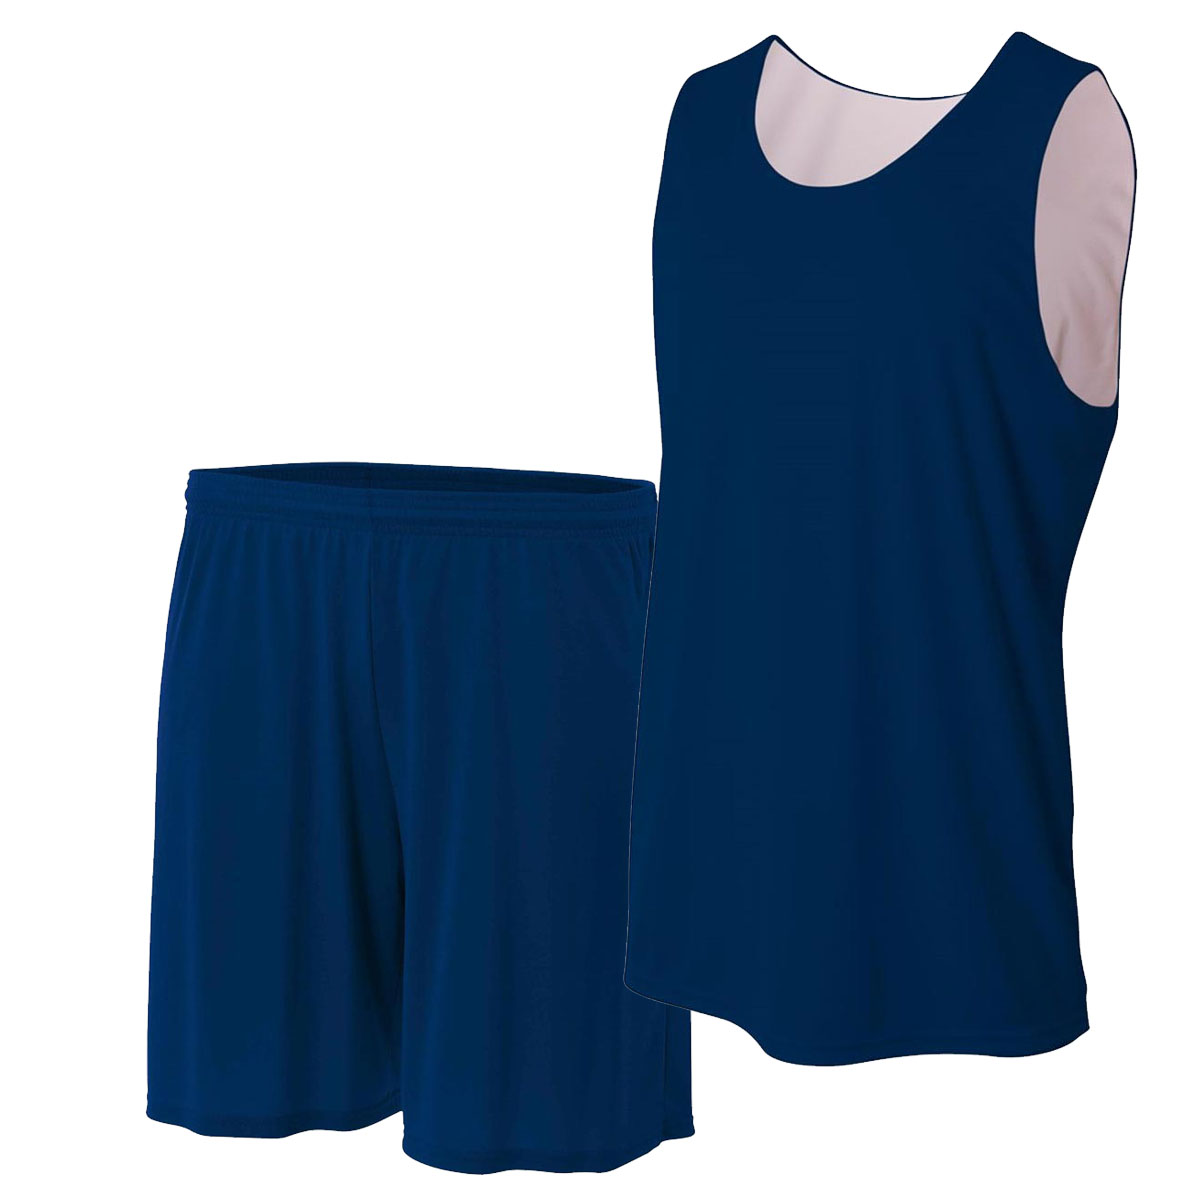 Reversible Basketball Uniforms Manufacturers in Raipur